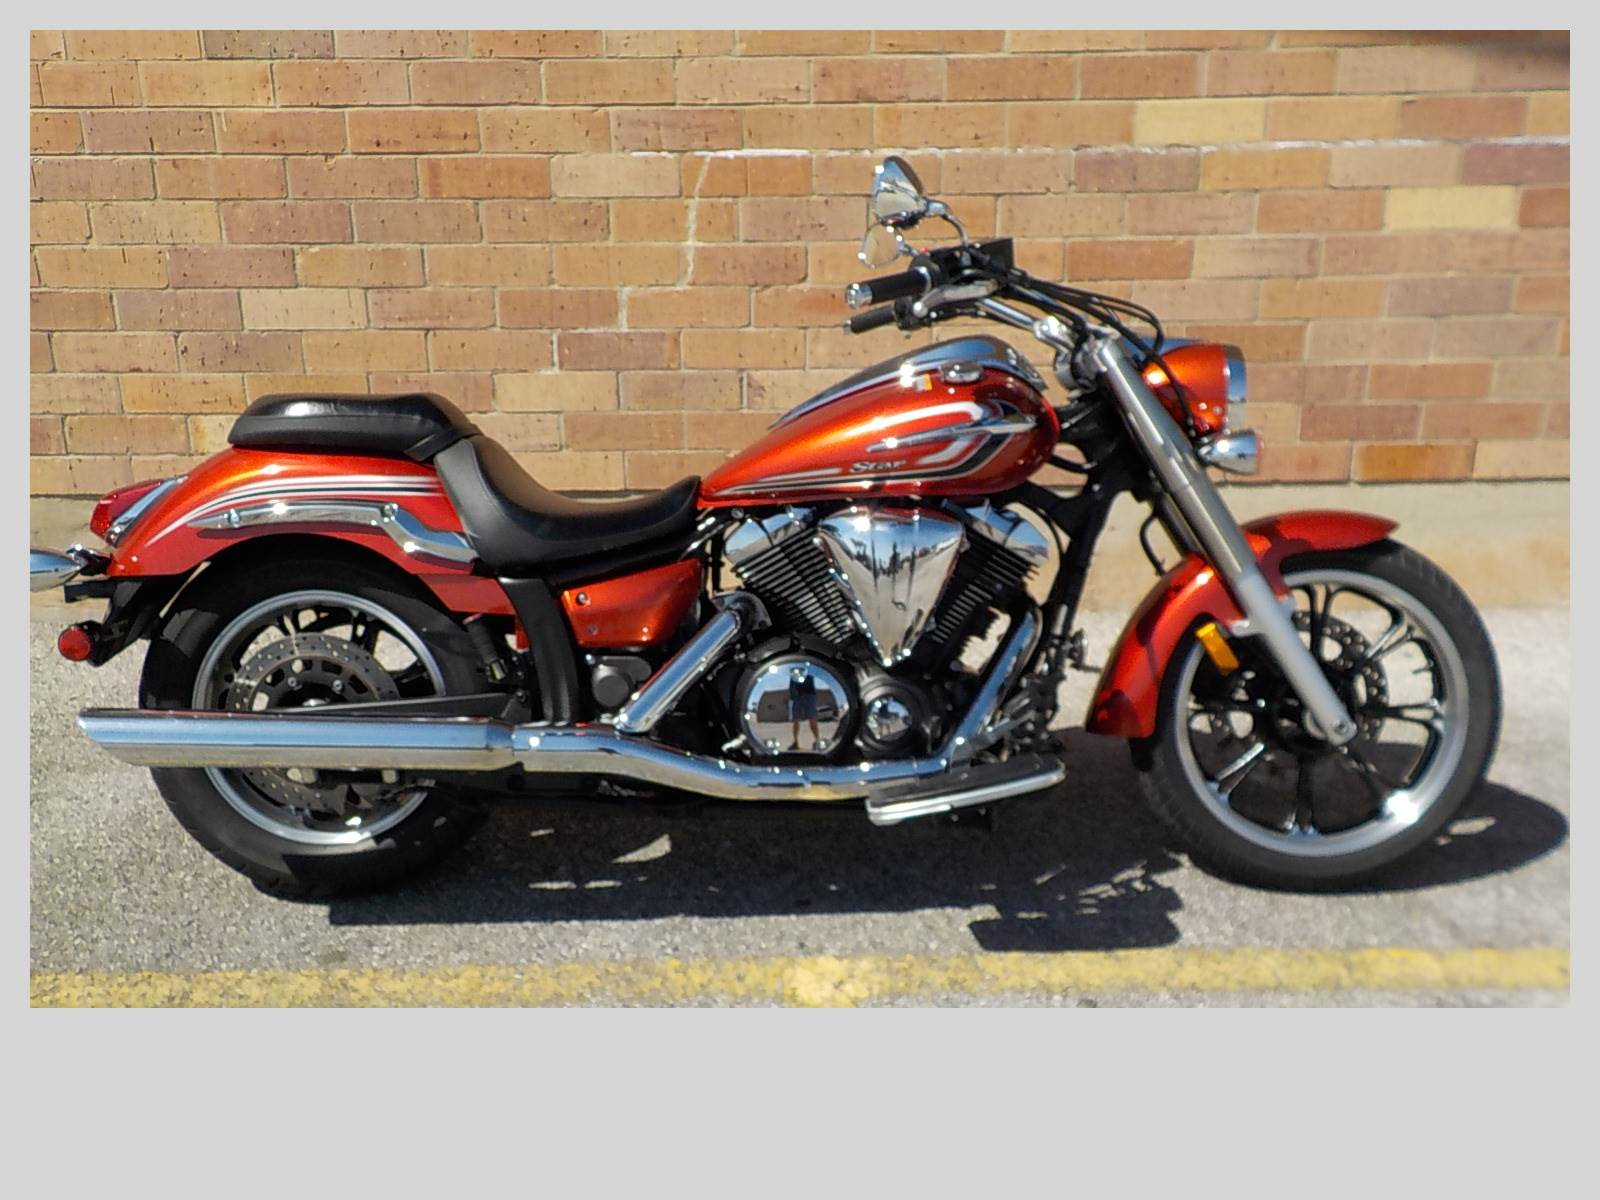 Used 2015 yamaha v star 950 motorcycles in san antonio tx for San diego yamaha motorcycle dealers